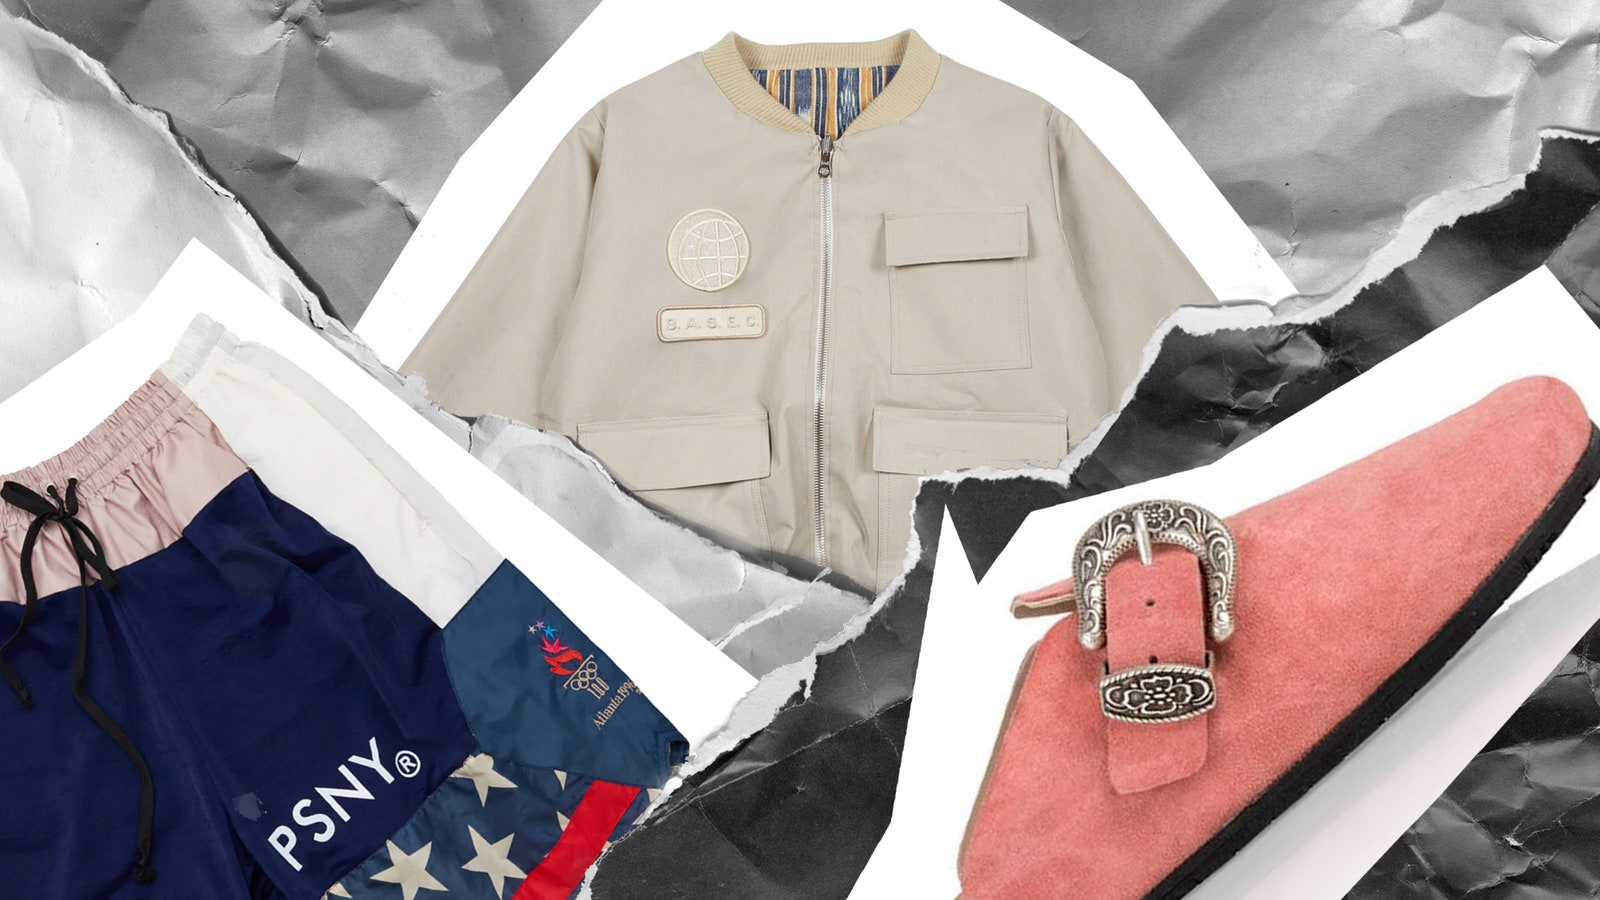 The 19 Best New Menswear Items to Buy This Week From Black-Owned Labels